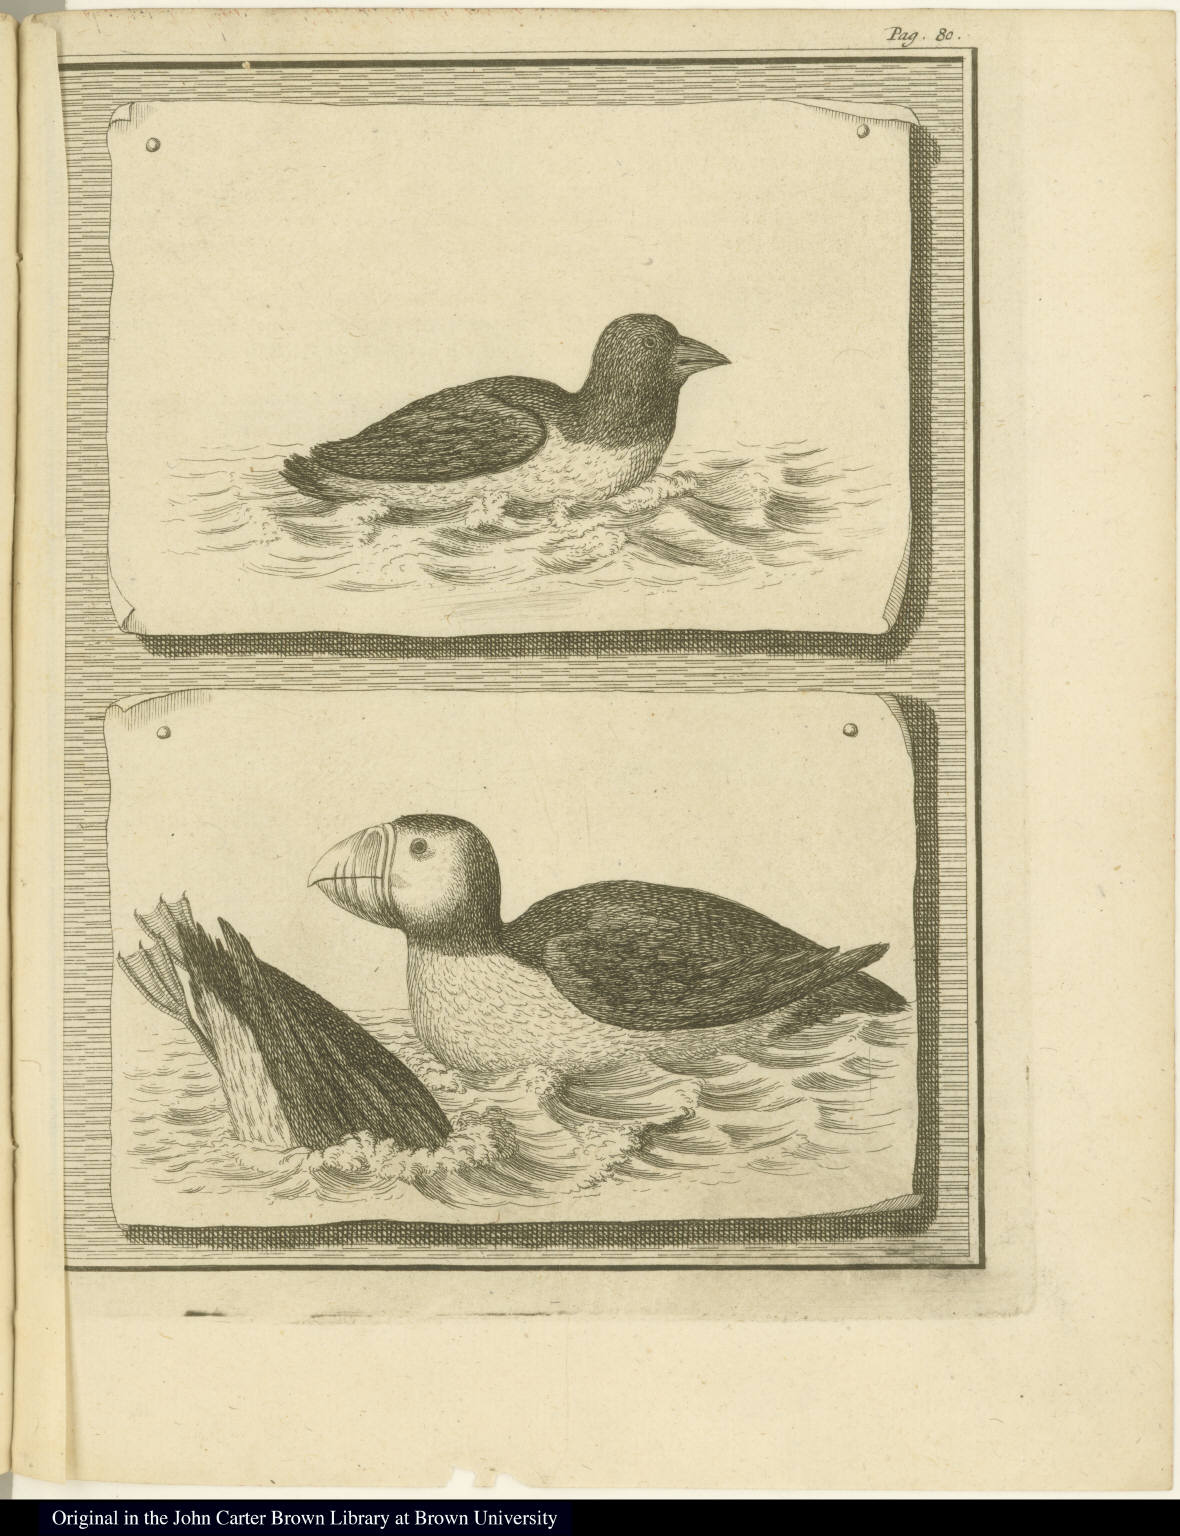 [Puffin and seabird]